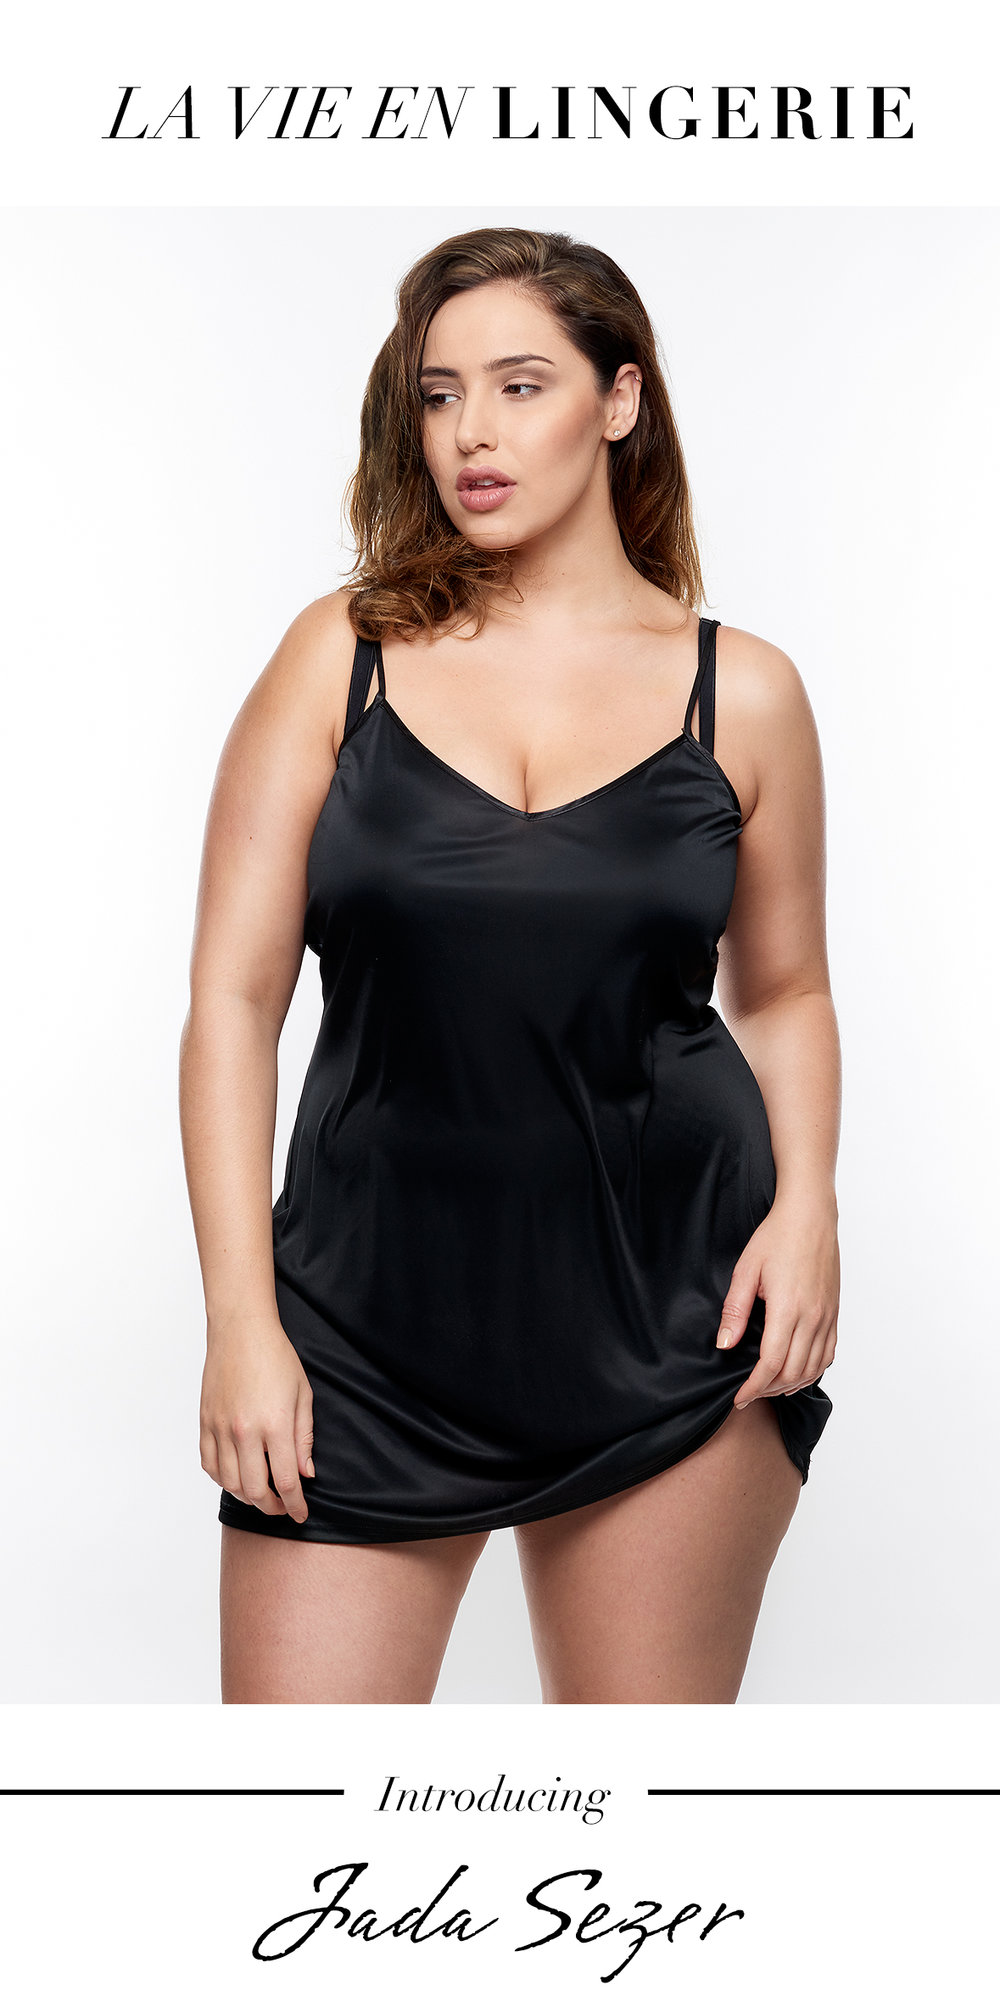 Jada-models-one-1-la-vie-en-lingerie-lingerie-la-femme-plus-size-model-black-slip-dress-02-main.jpg